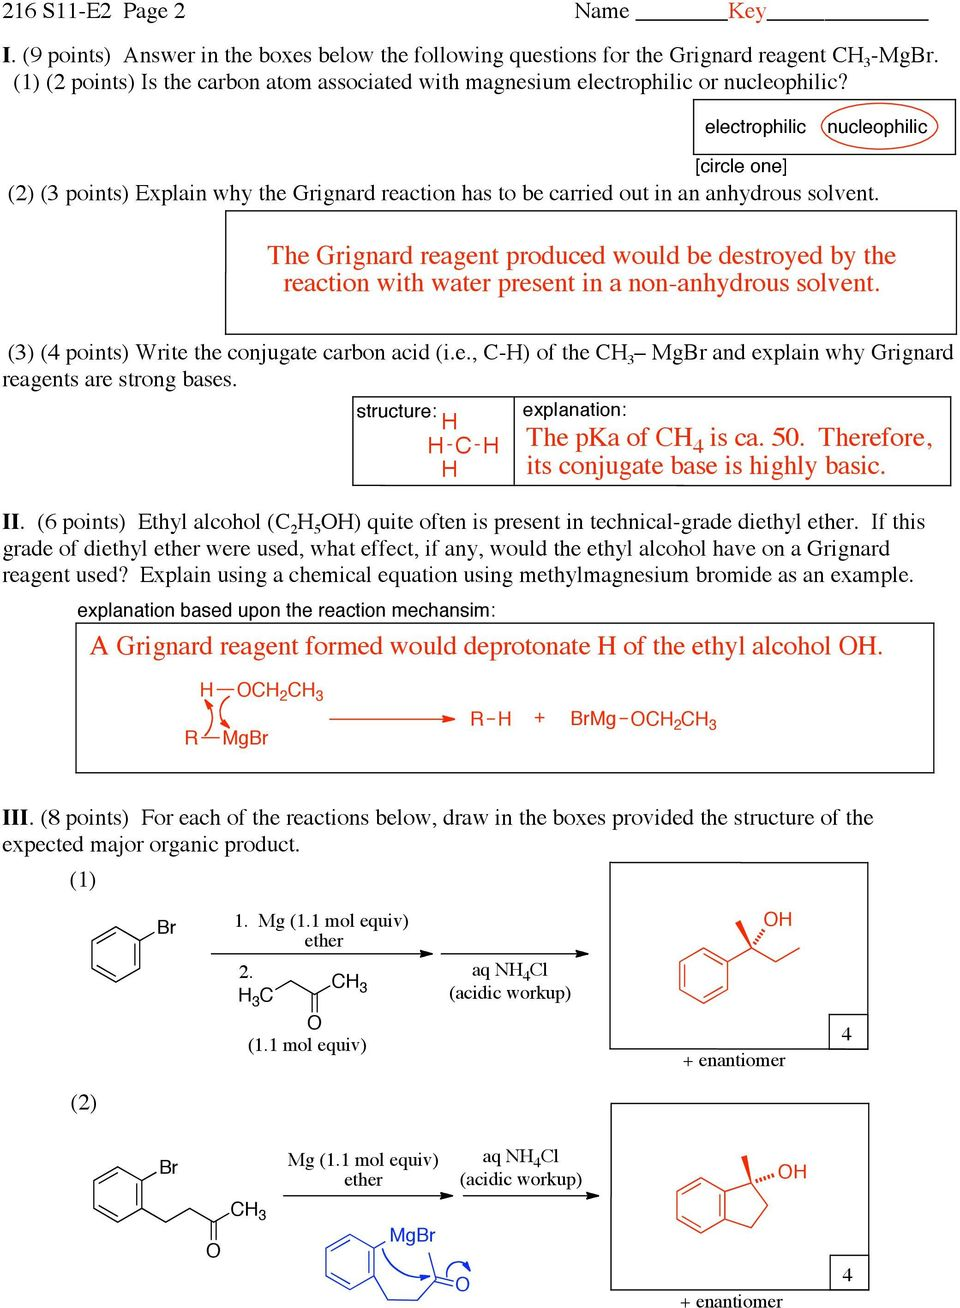 electrophilic nucleophilic [circle one] (2) (3 points) Explain why the Grignard reaction has to be carried out in an anhydrous solvent.